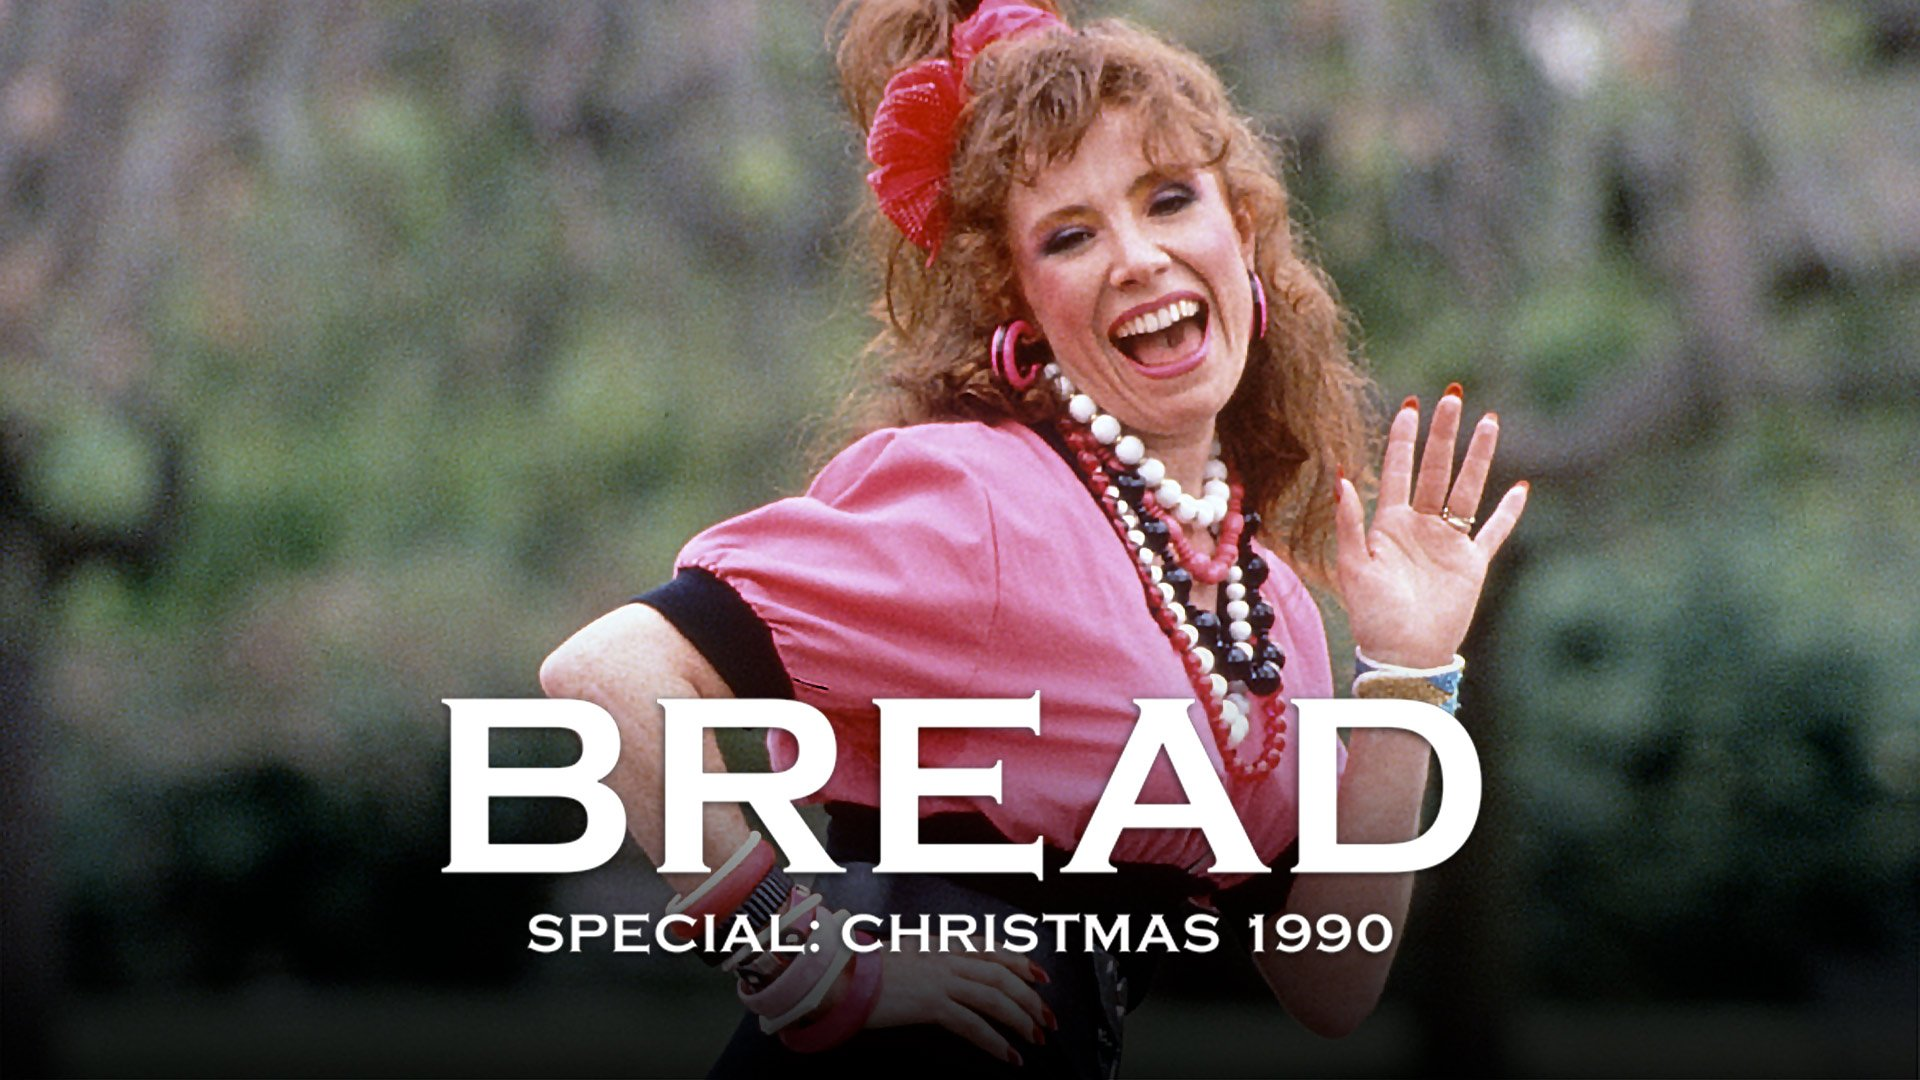 Bread Christmas Special 1990 on BritBox UK